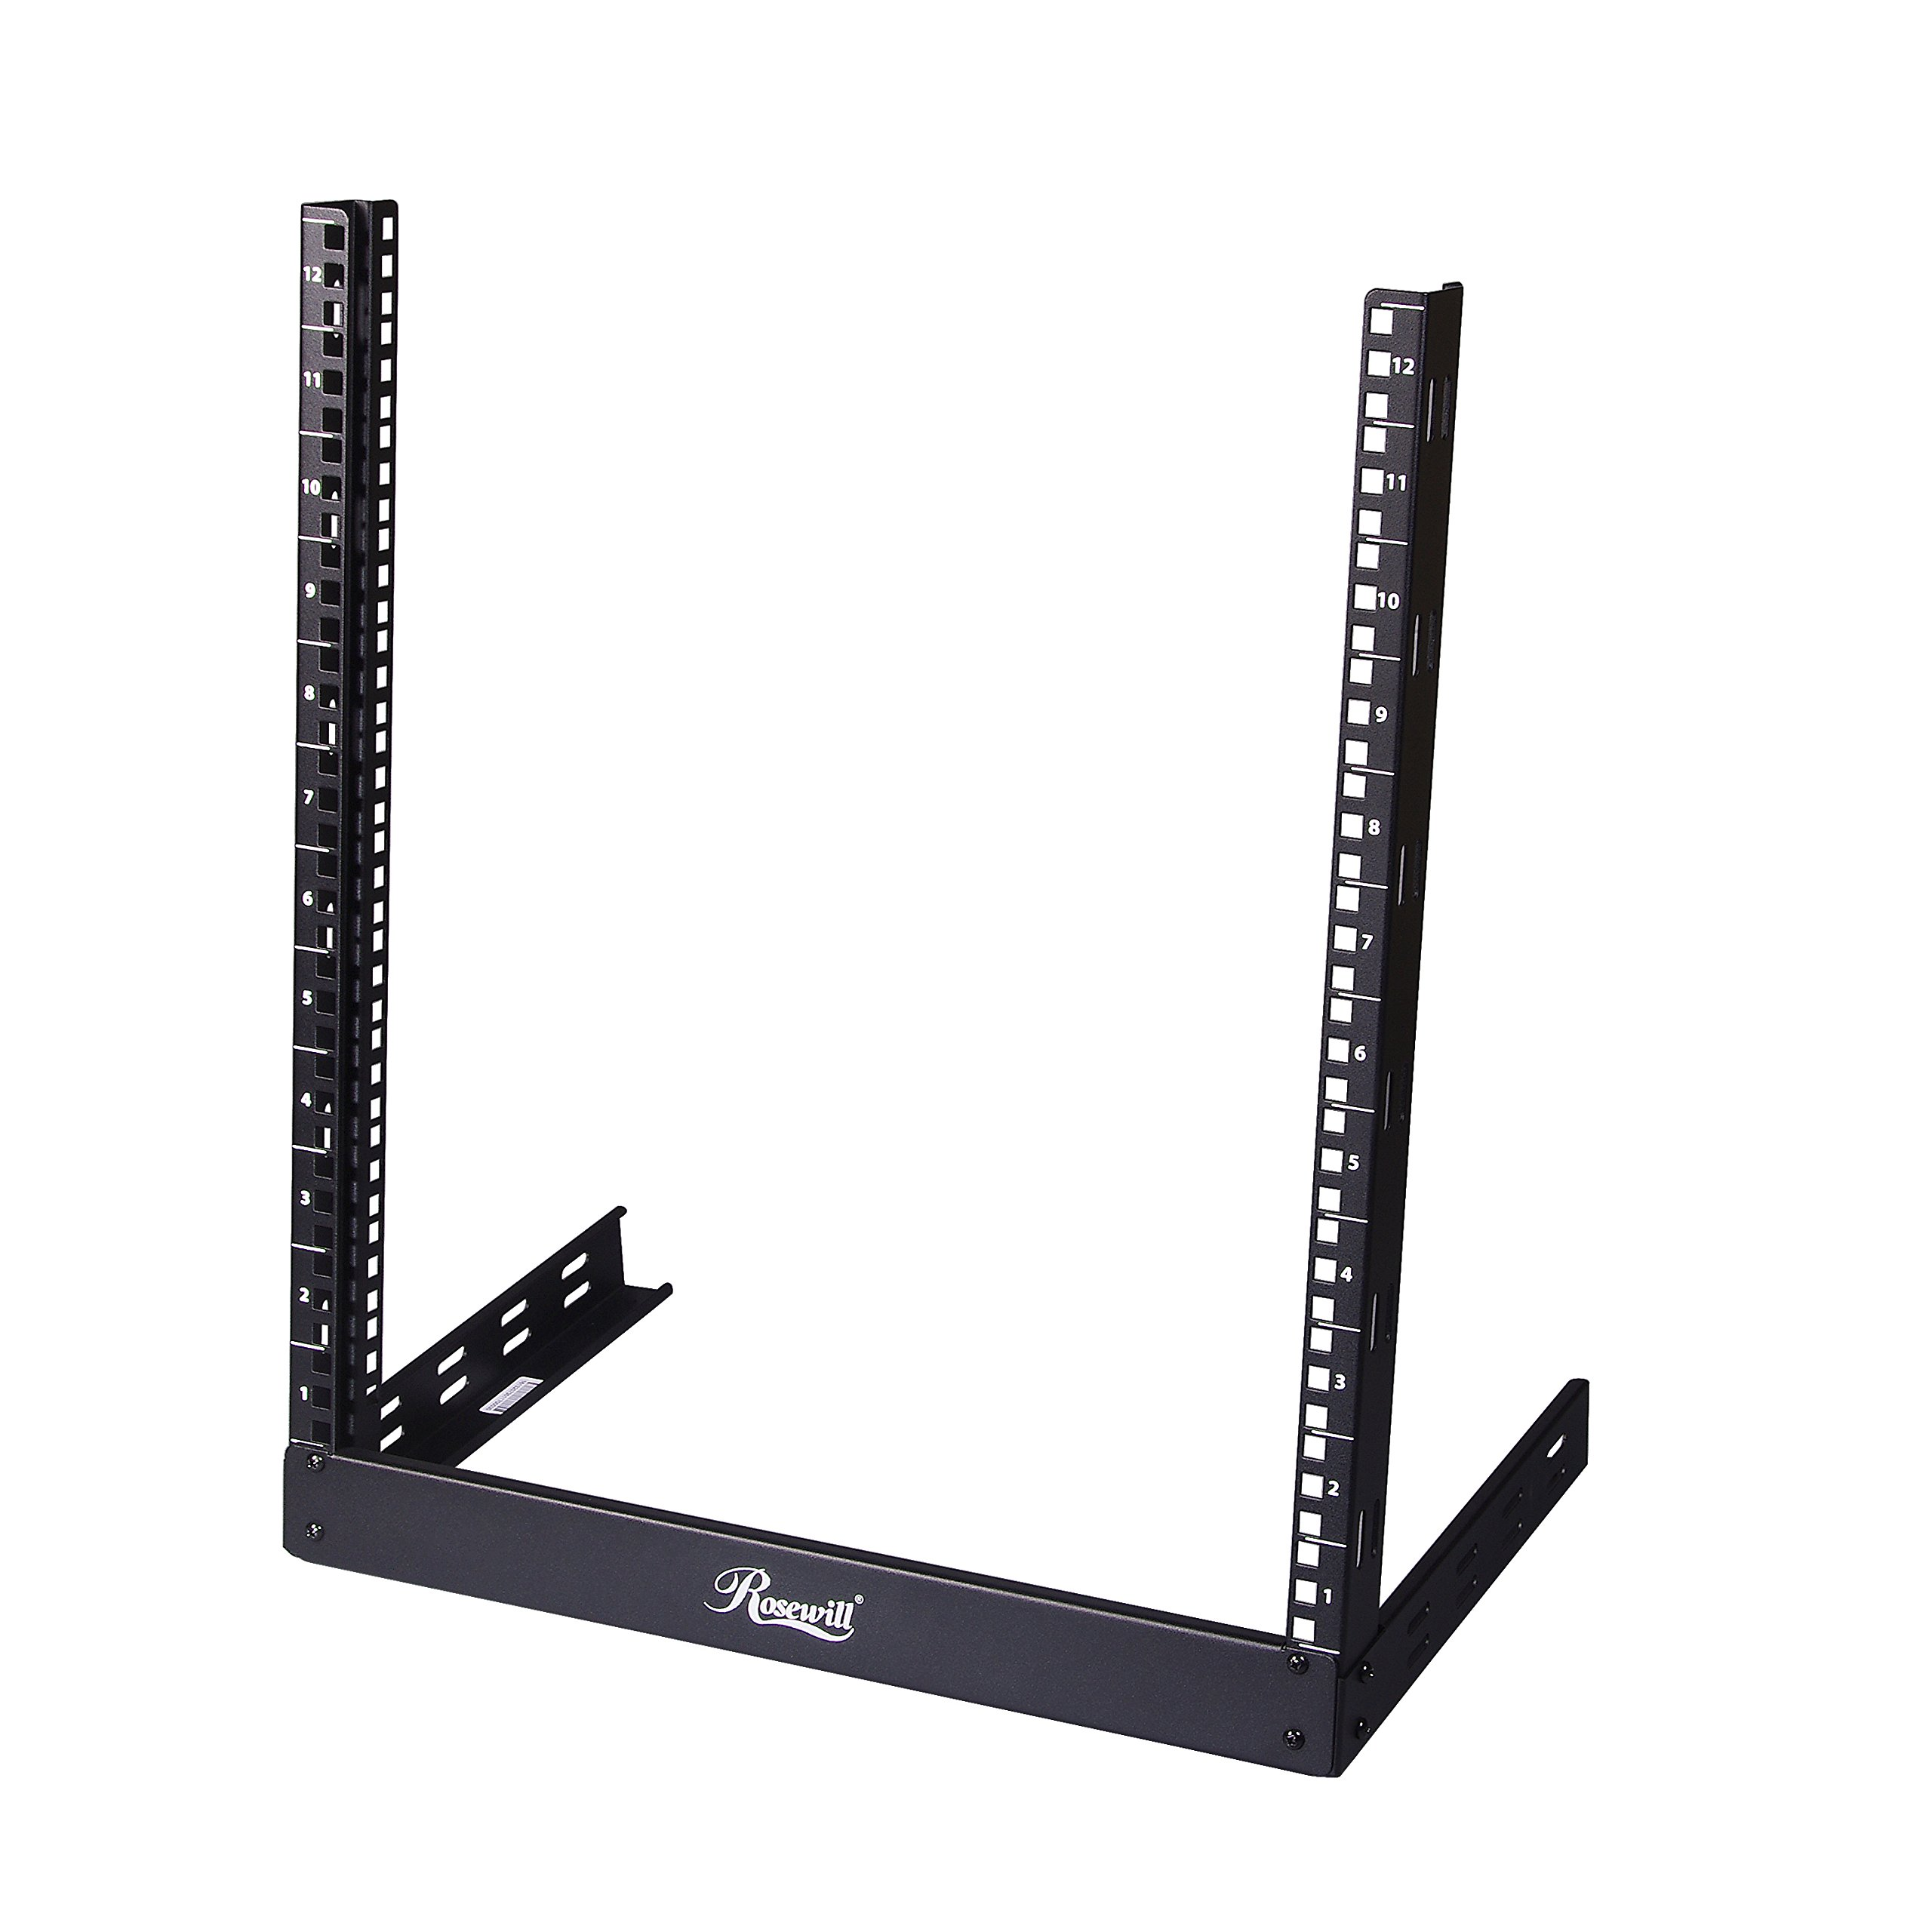 Rosewill 12U Server Rack, 19 Inch Desktop Open Frame 2 Post Server Desk Rack Free Standing (RSR-2P12U0001)